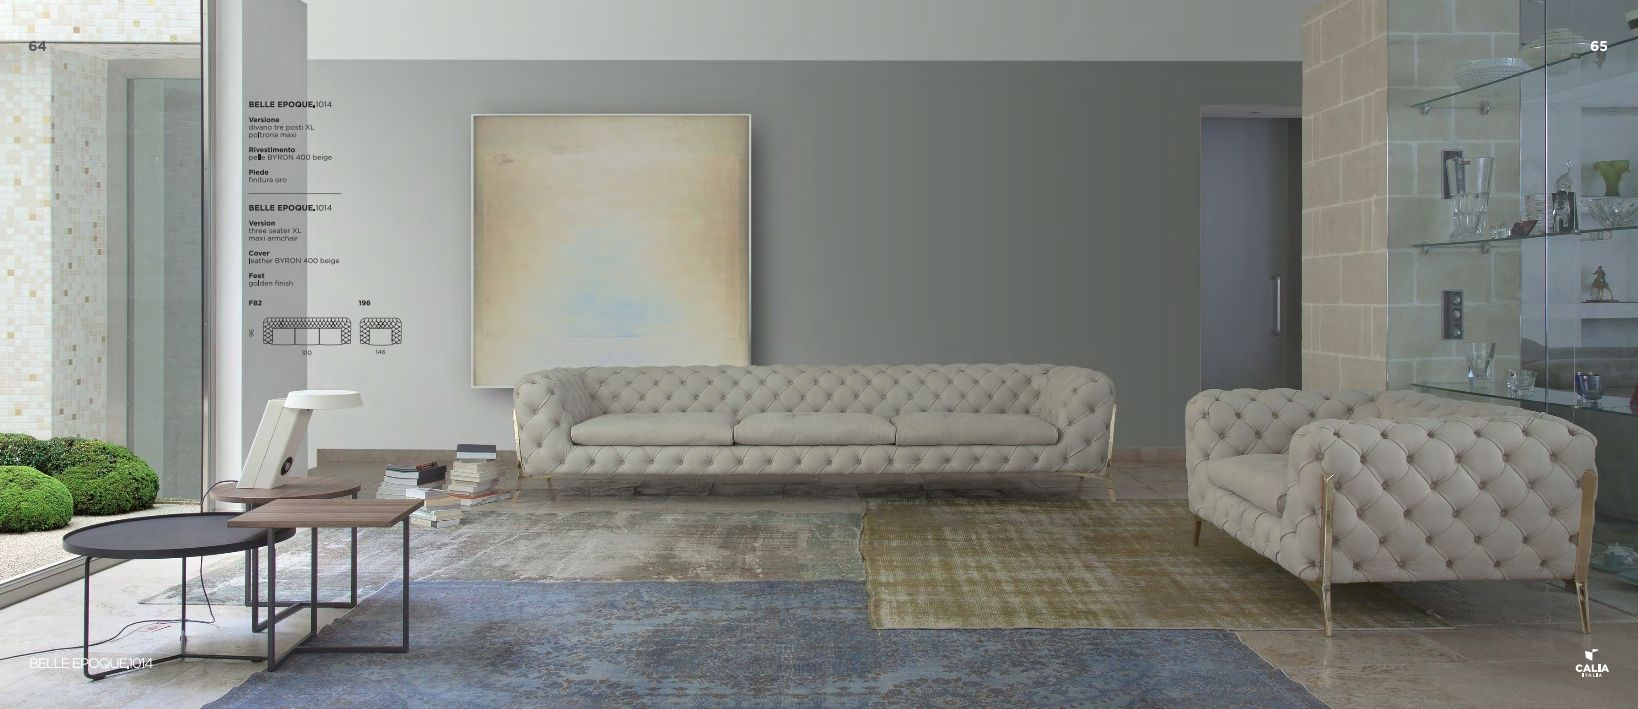 upholstered furniture calia italia belle epoque 1014 series